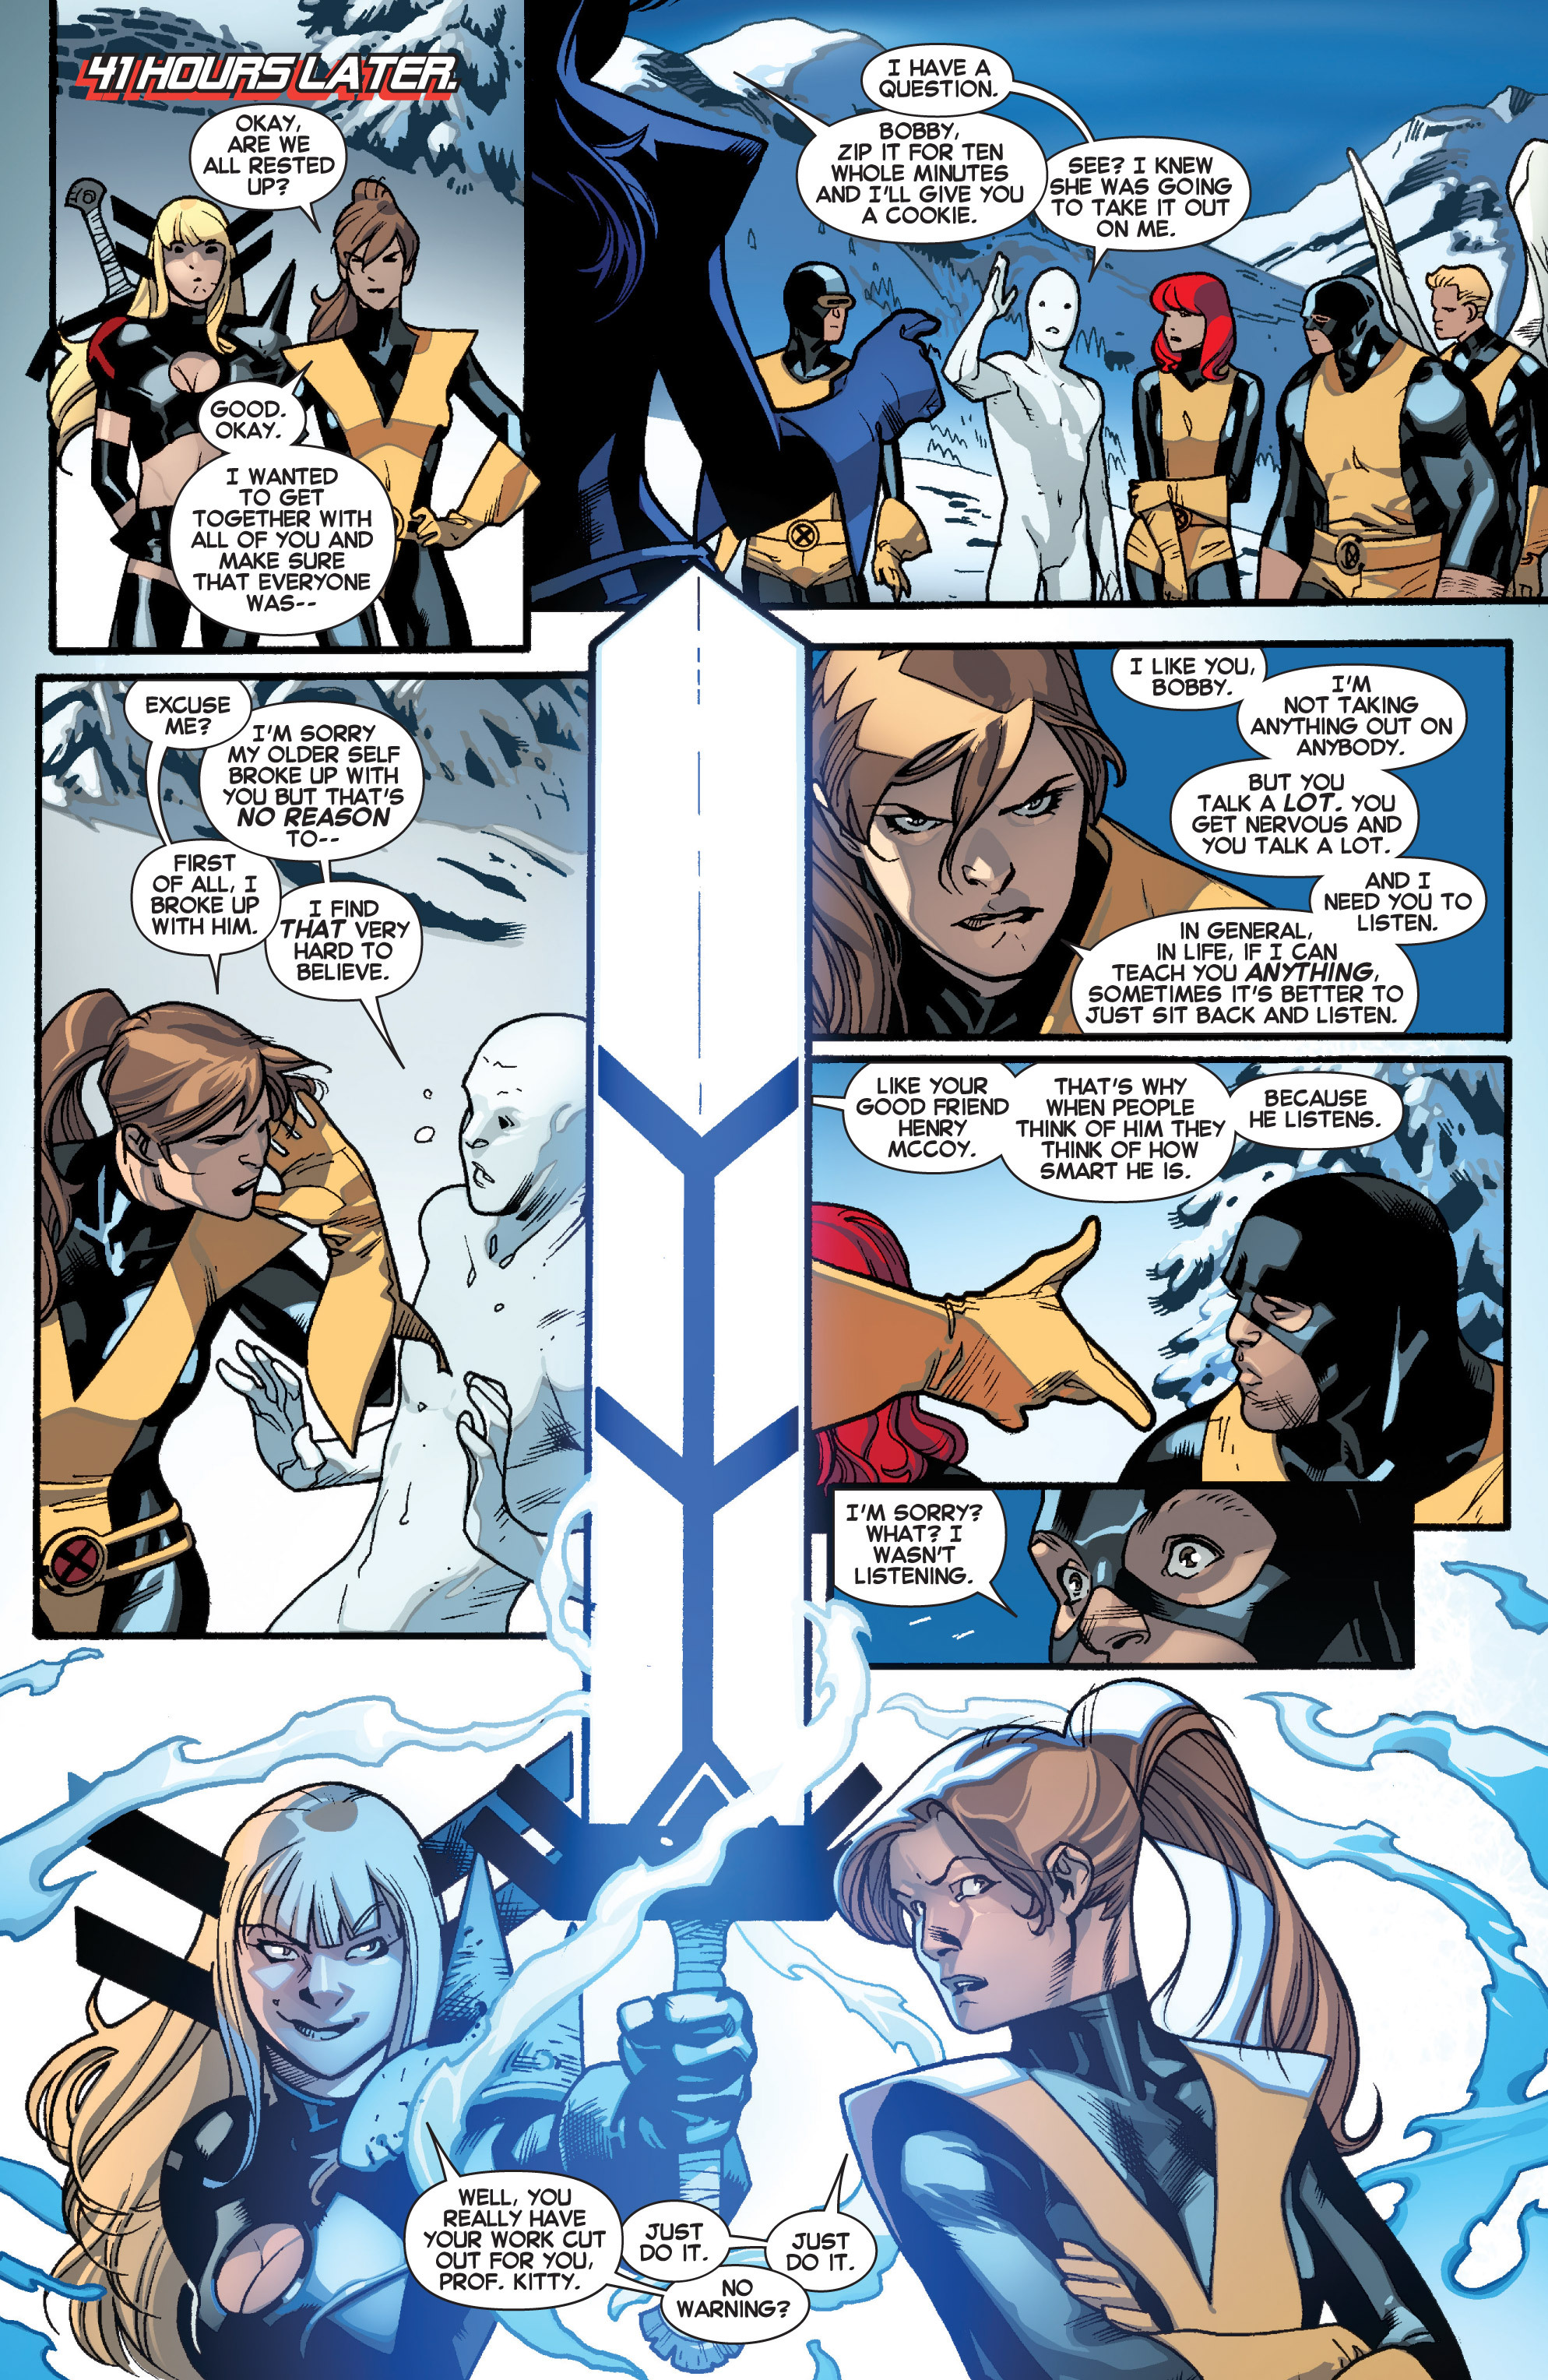 Read online All-New X-Men (2013) comic -  Issue # _Special - All-Different - 15